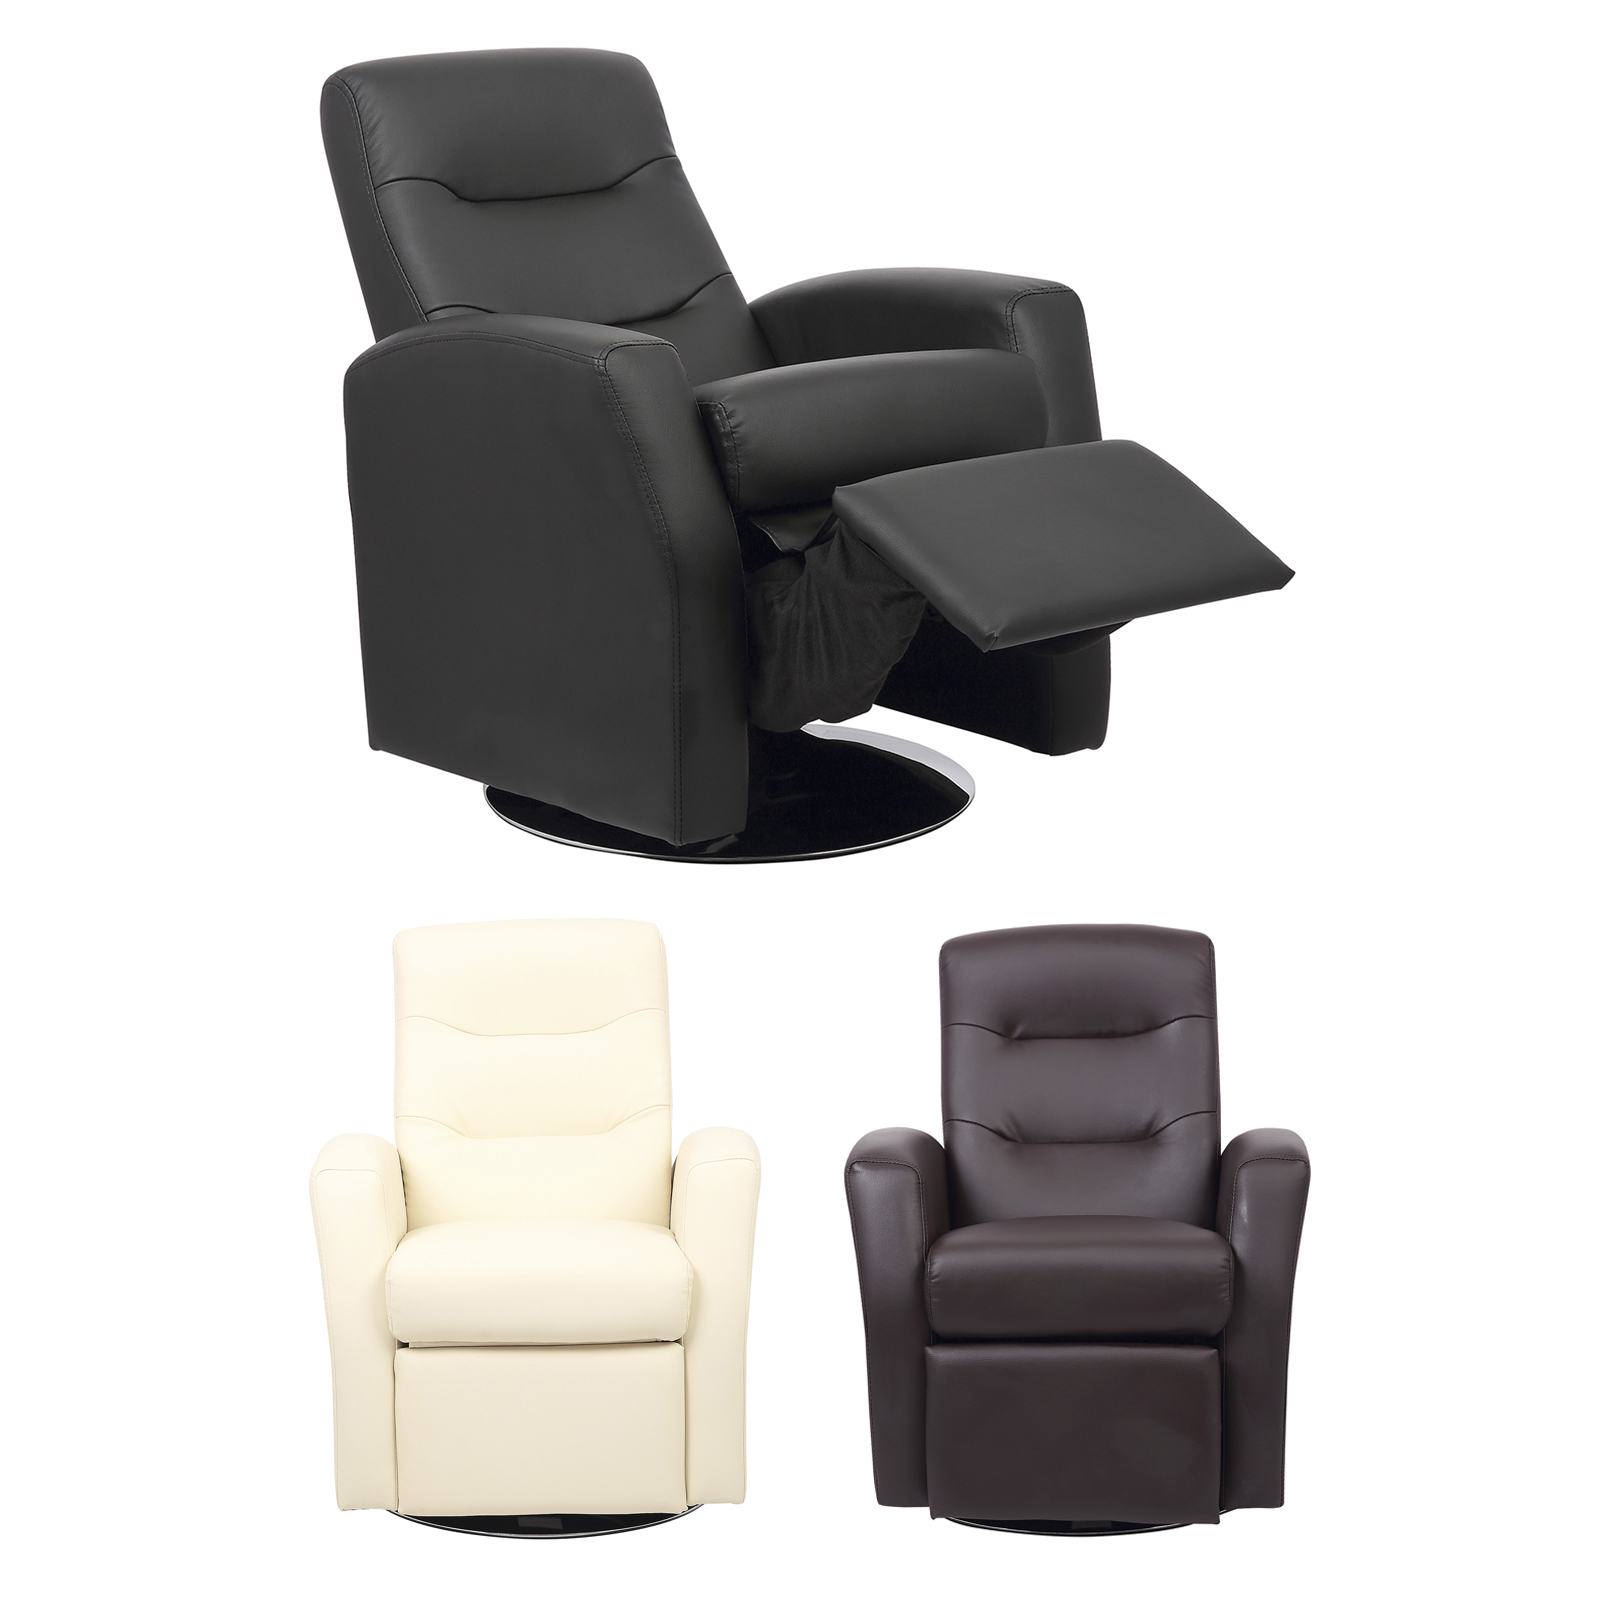 swivel chair child barcelona chairs for sale kids reclining living room furniture padded